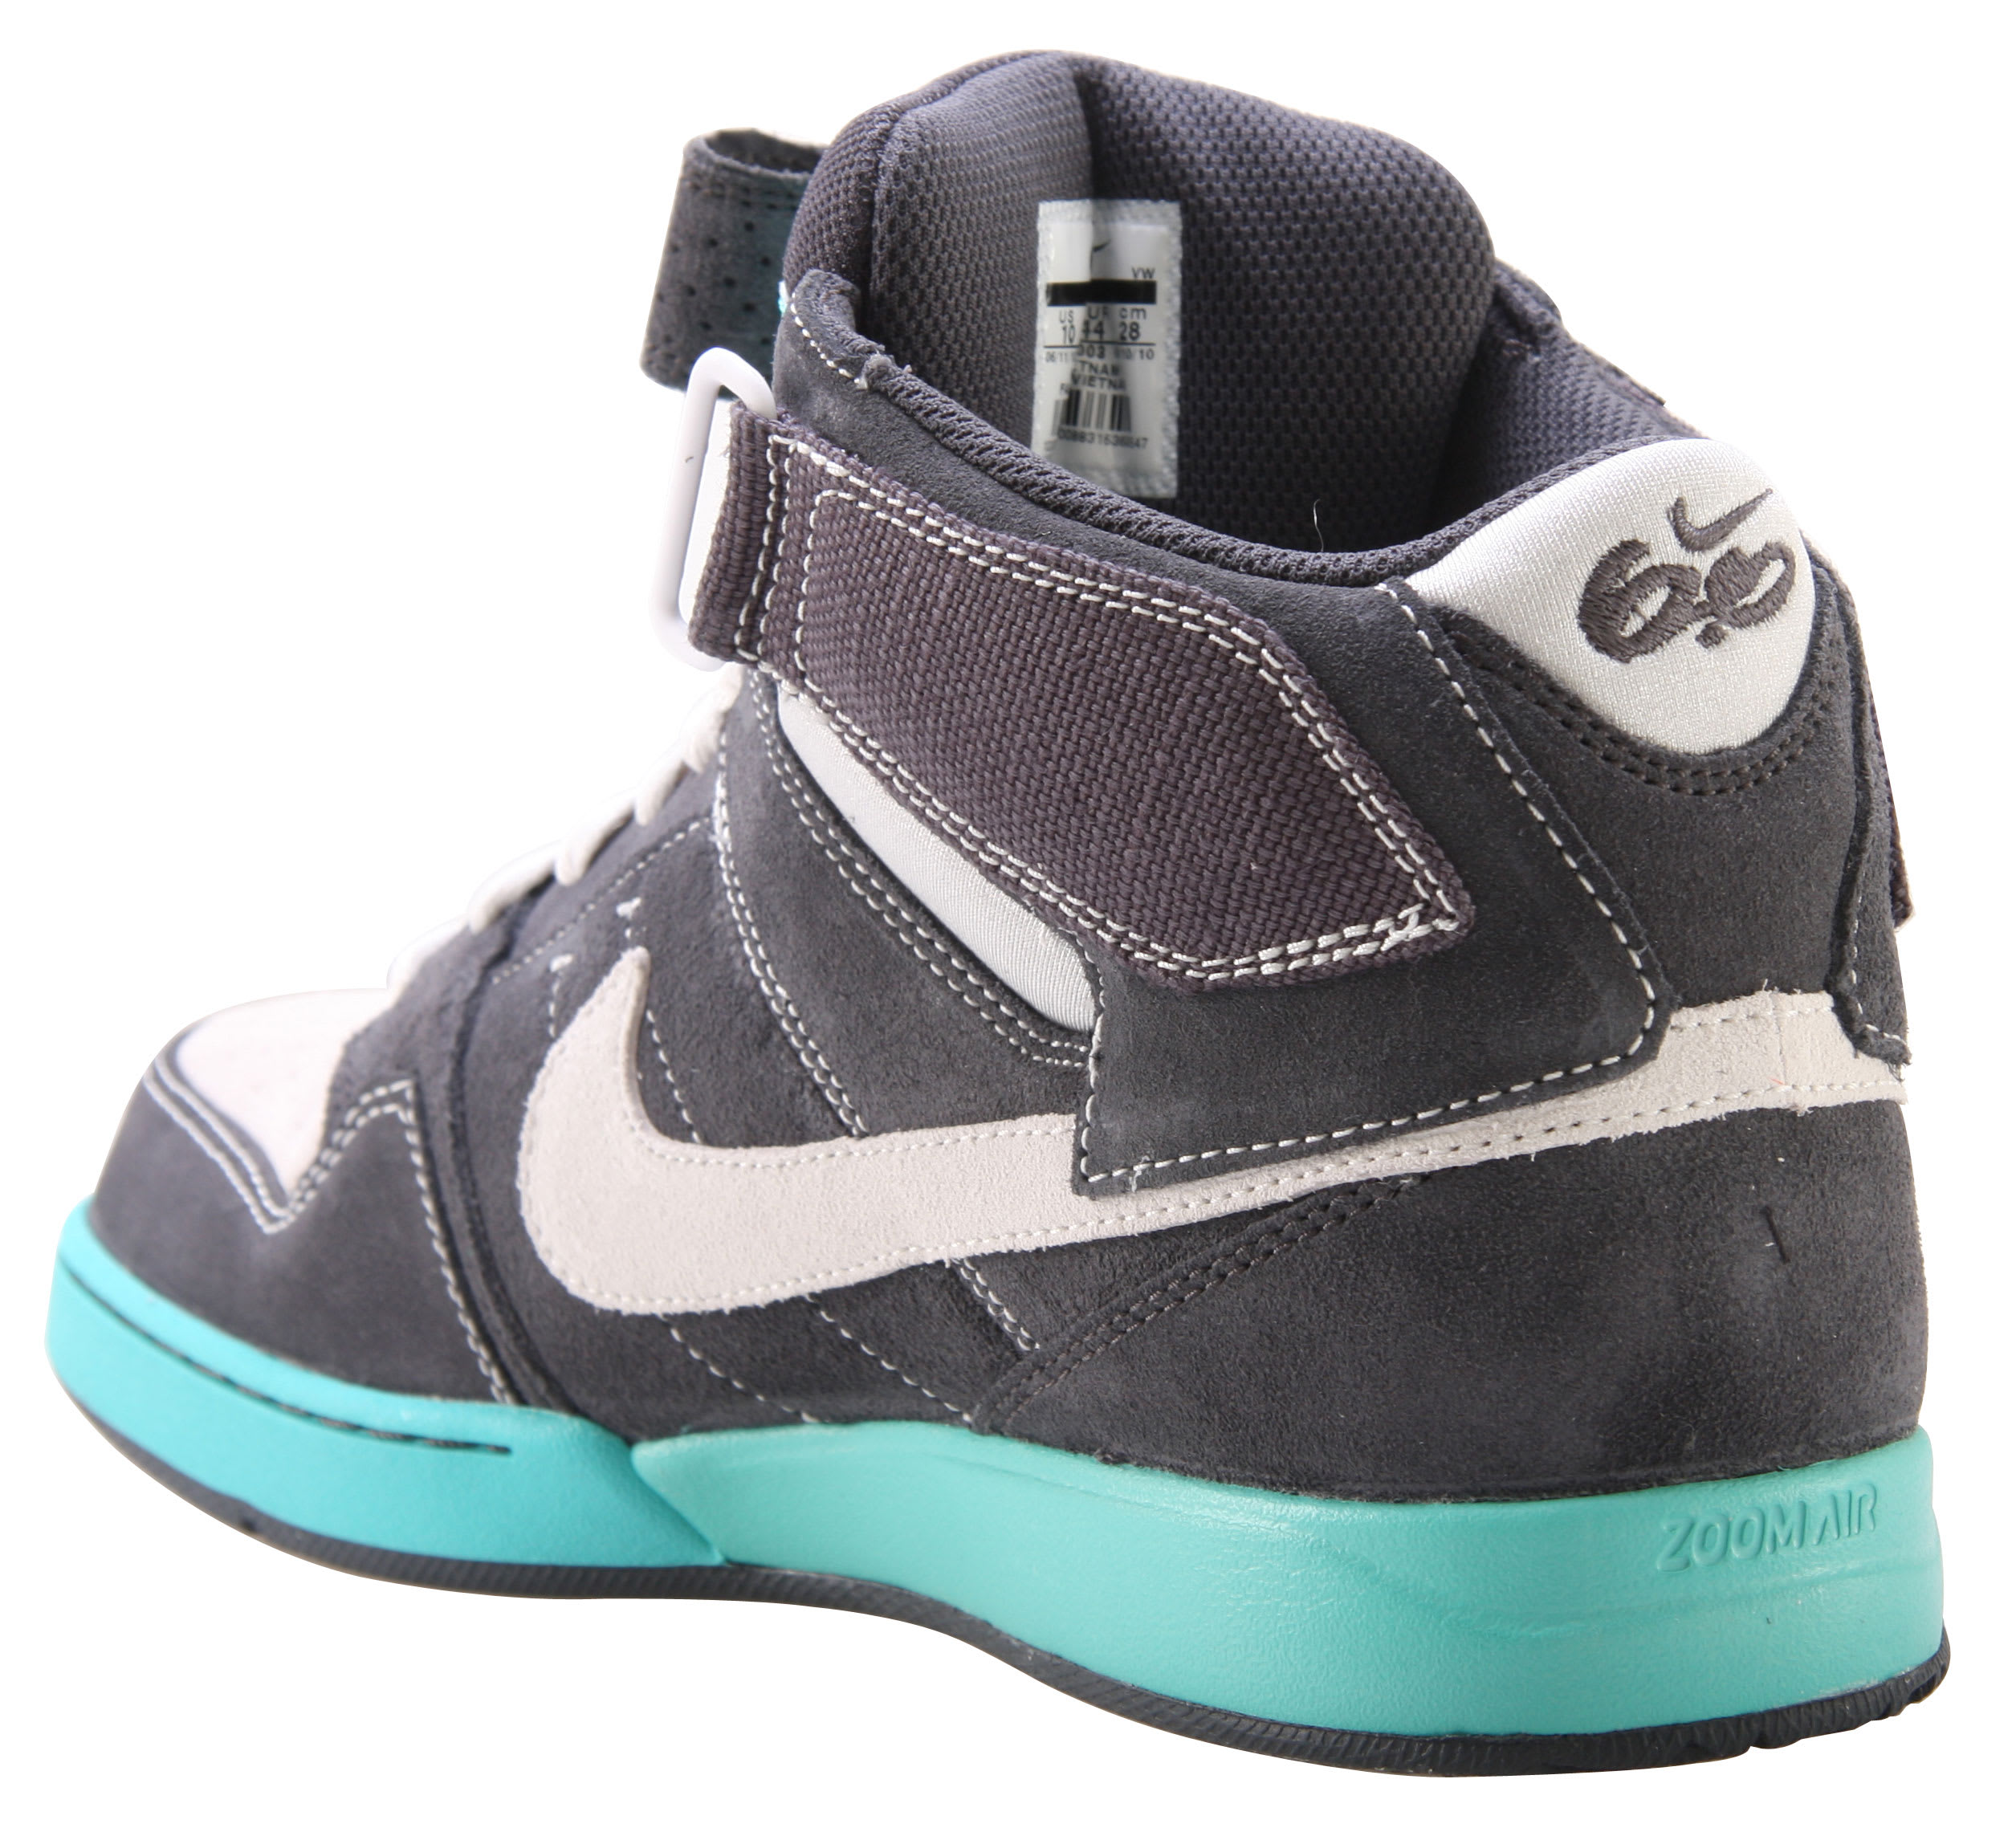 low priced 1f734 7075c Nike Zoom Mogan Mid 2 Skate Shoes